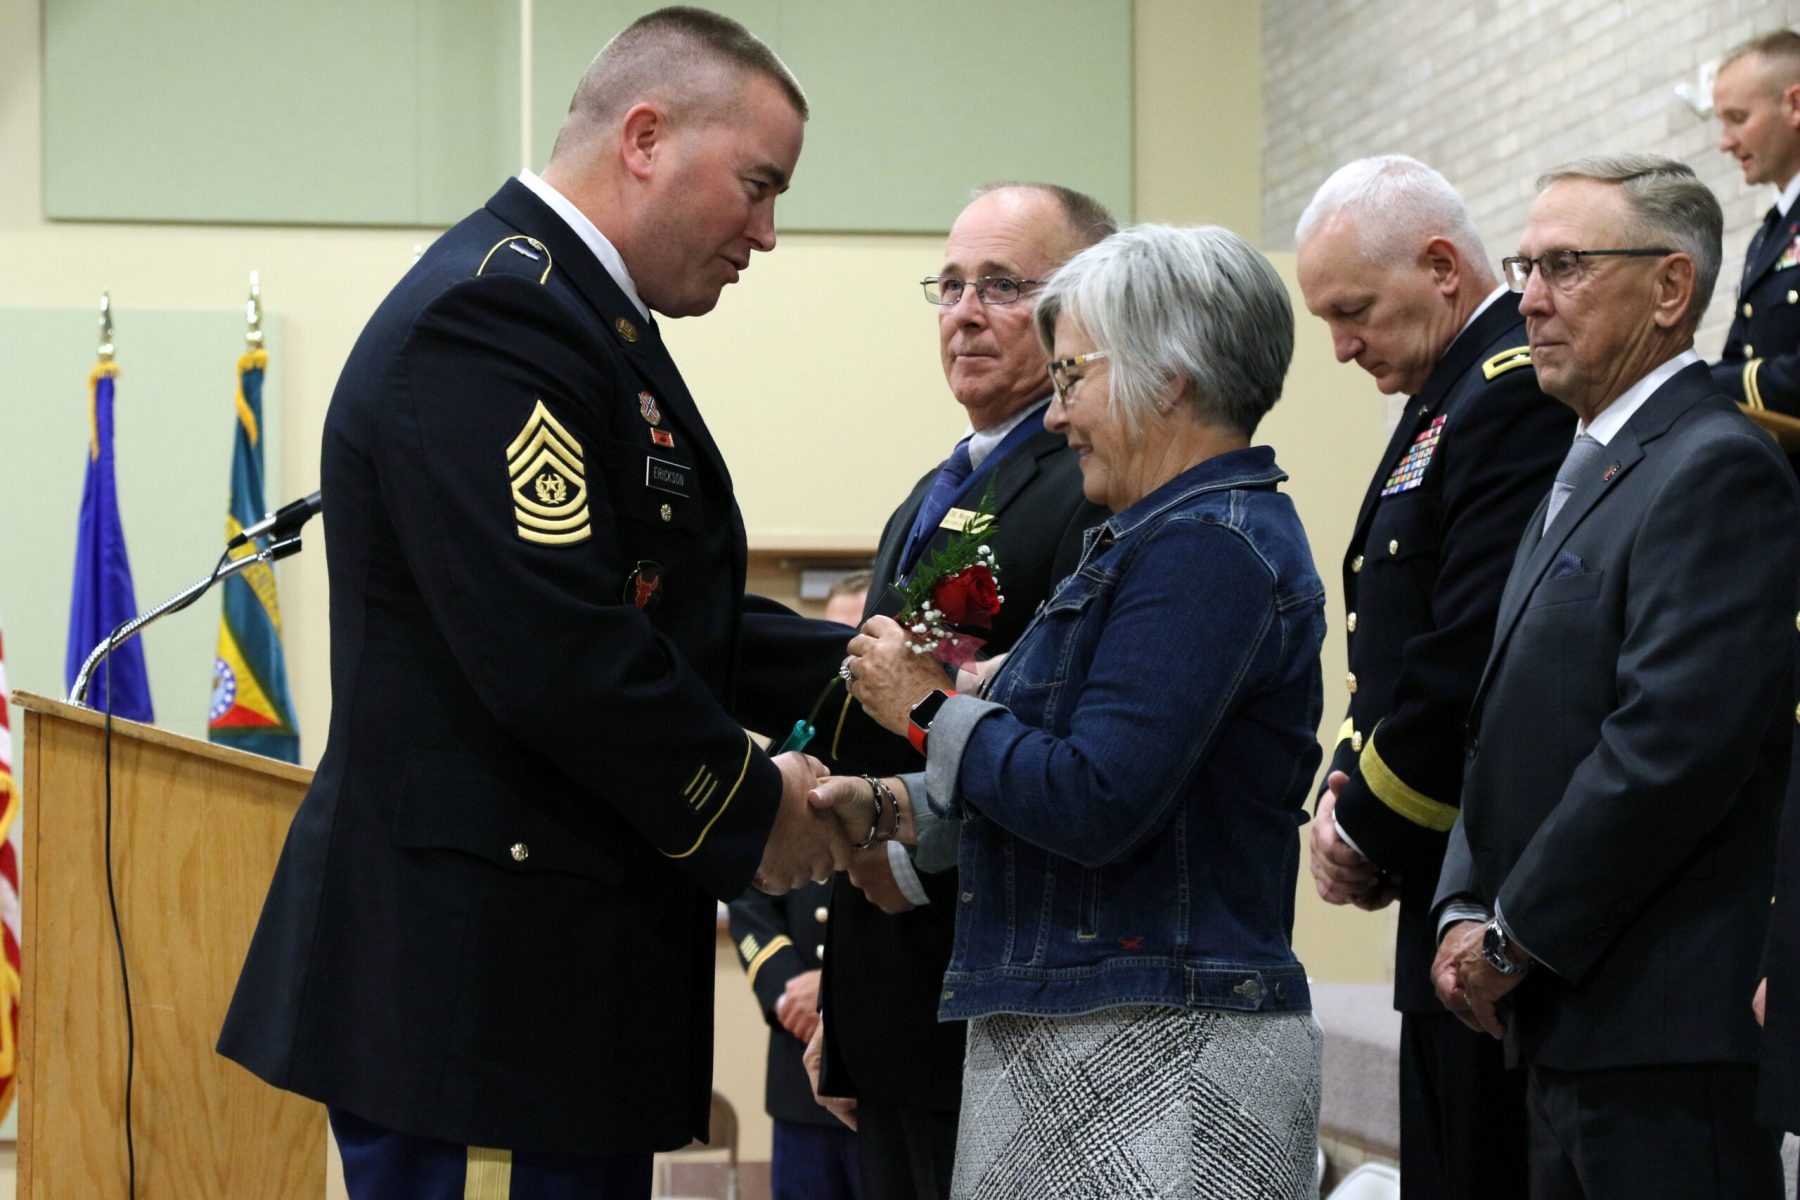 Command Sergeant Major Erikson presents a rose to the family of Colonel (ret.) Wayne M. Hayes during the Court of Honor Induction Ceremony on Camp Ripley on October 6th 2019.